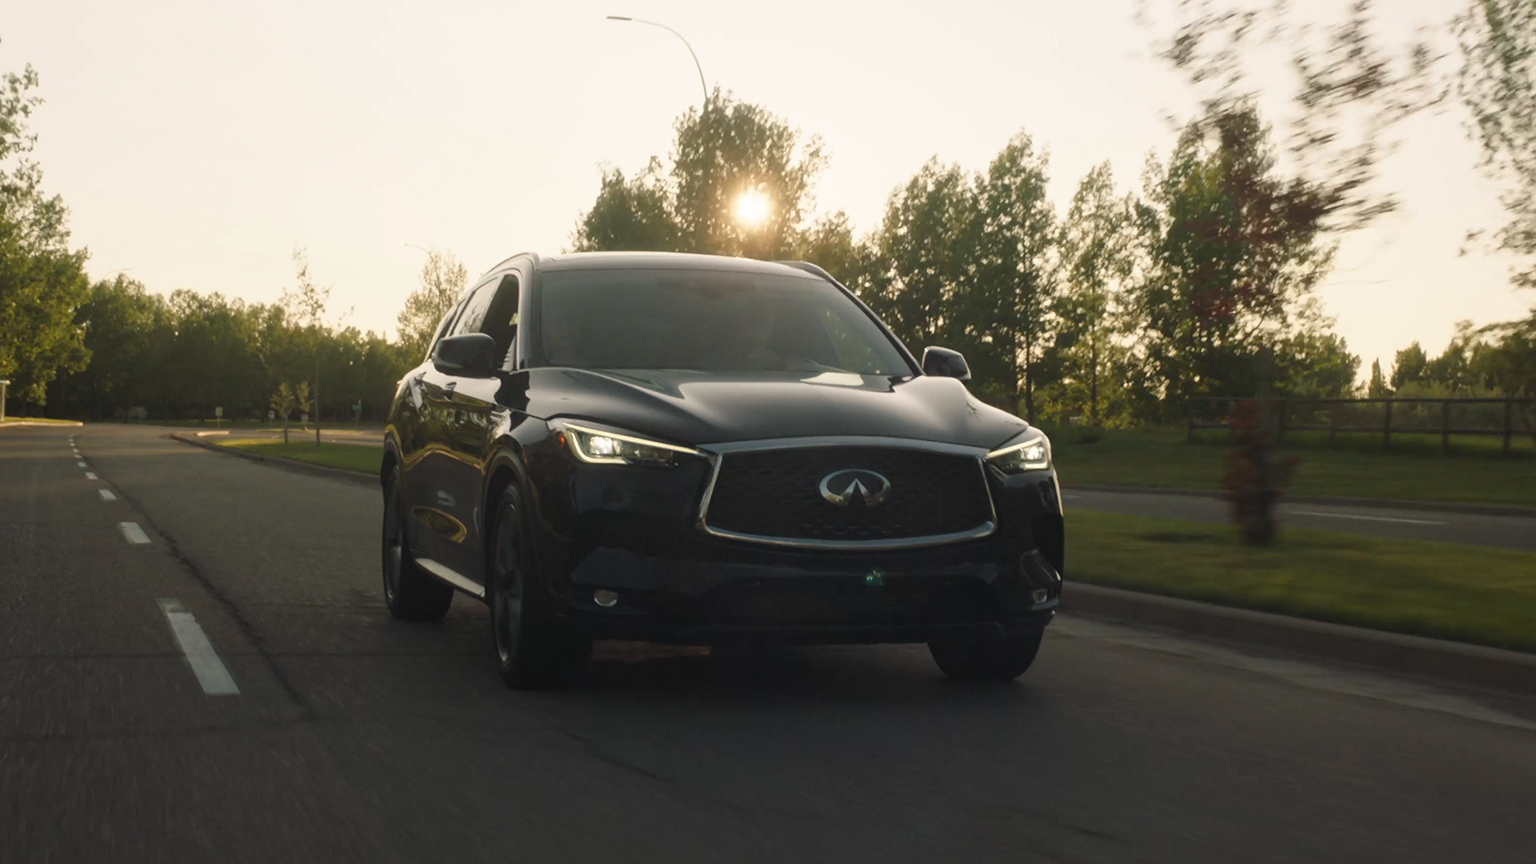 INFINITI's 30th Anniversary Video